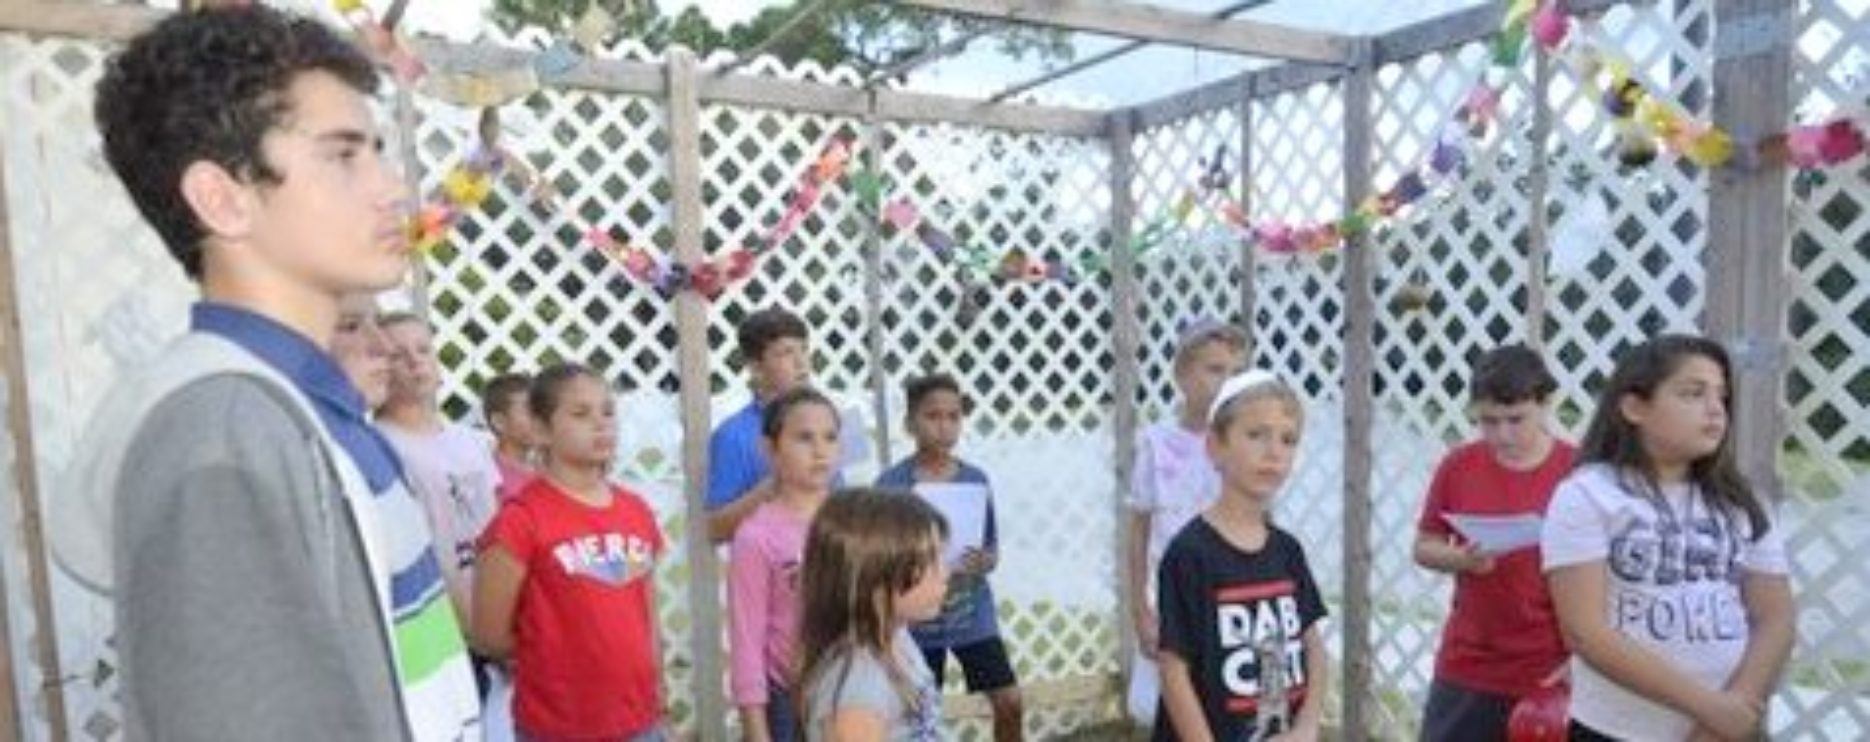 Our Children in Sukkah